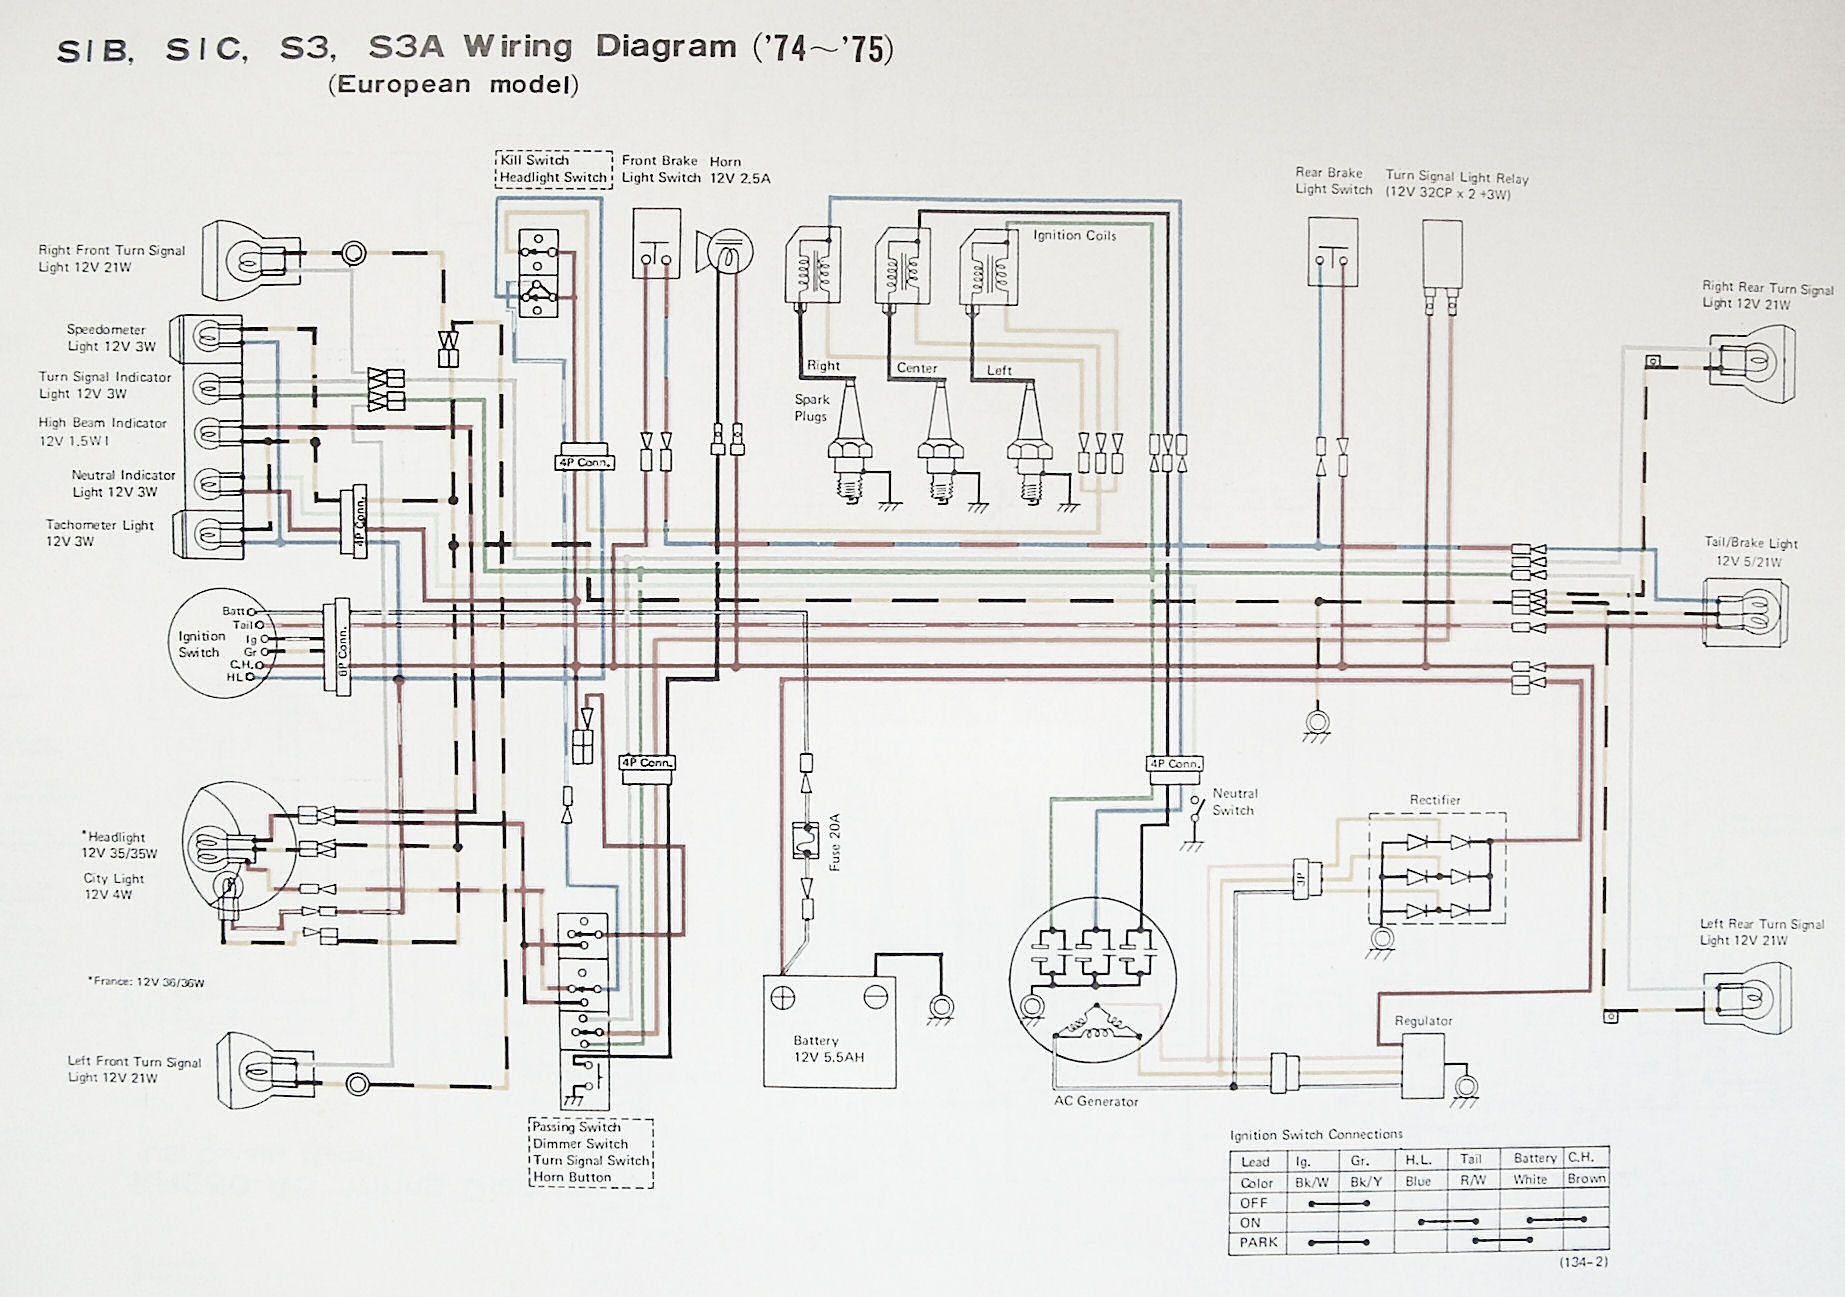 Kawasaki S3 Wiring Diagram Start Building A 220 4 Wheeler Electrical Diagrams Rh 3cyl Com 300 Atv